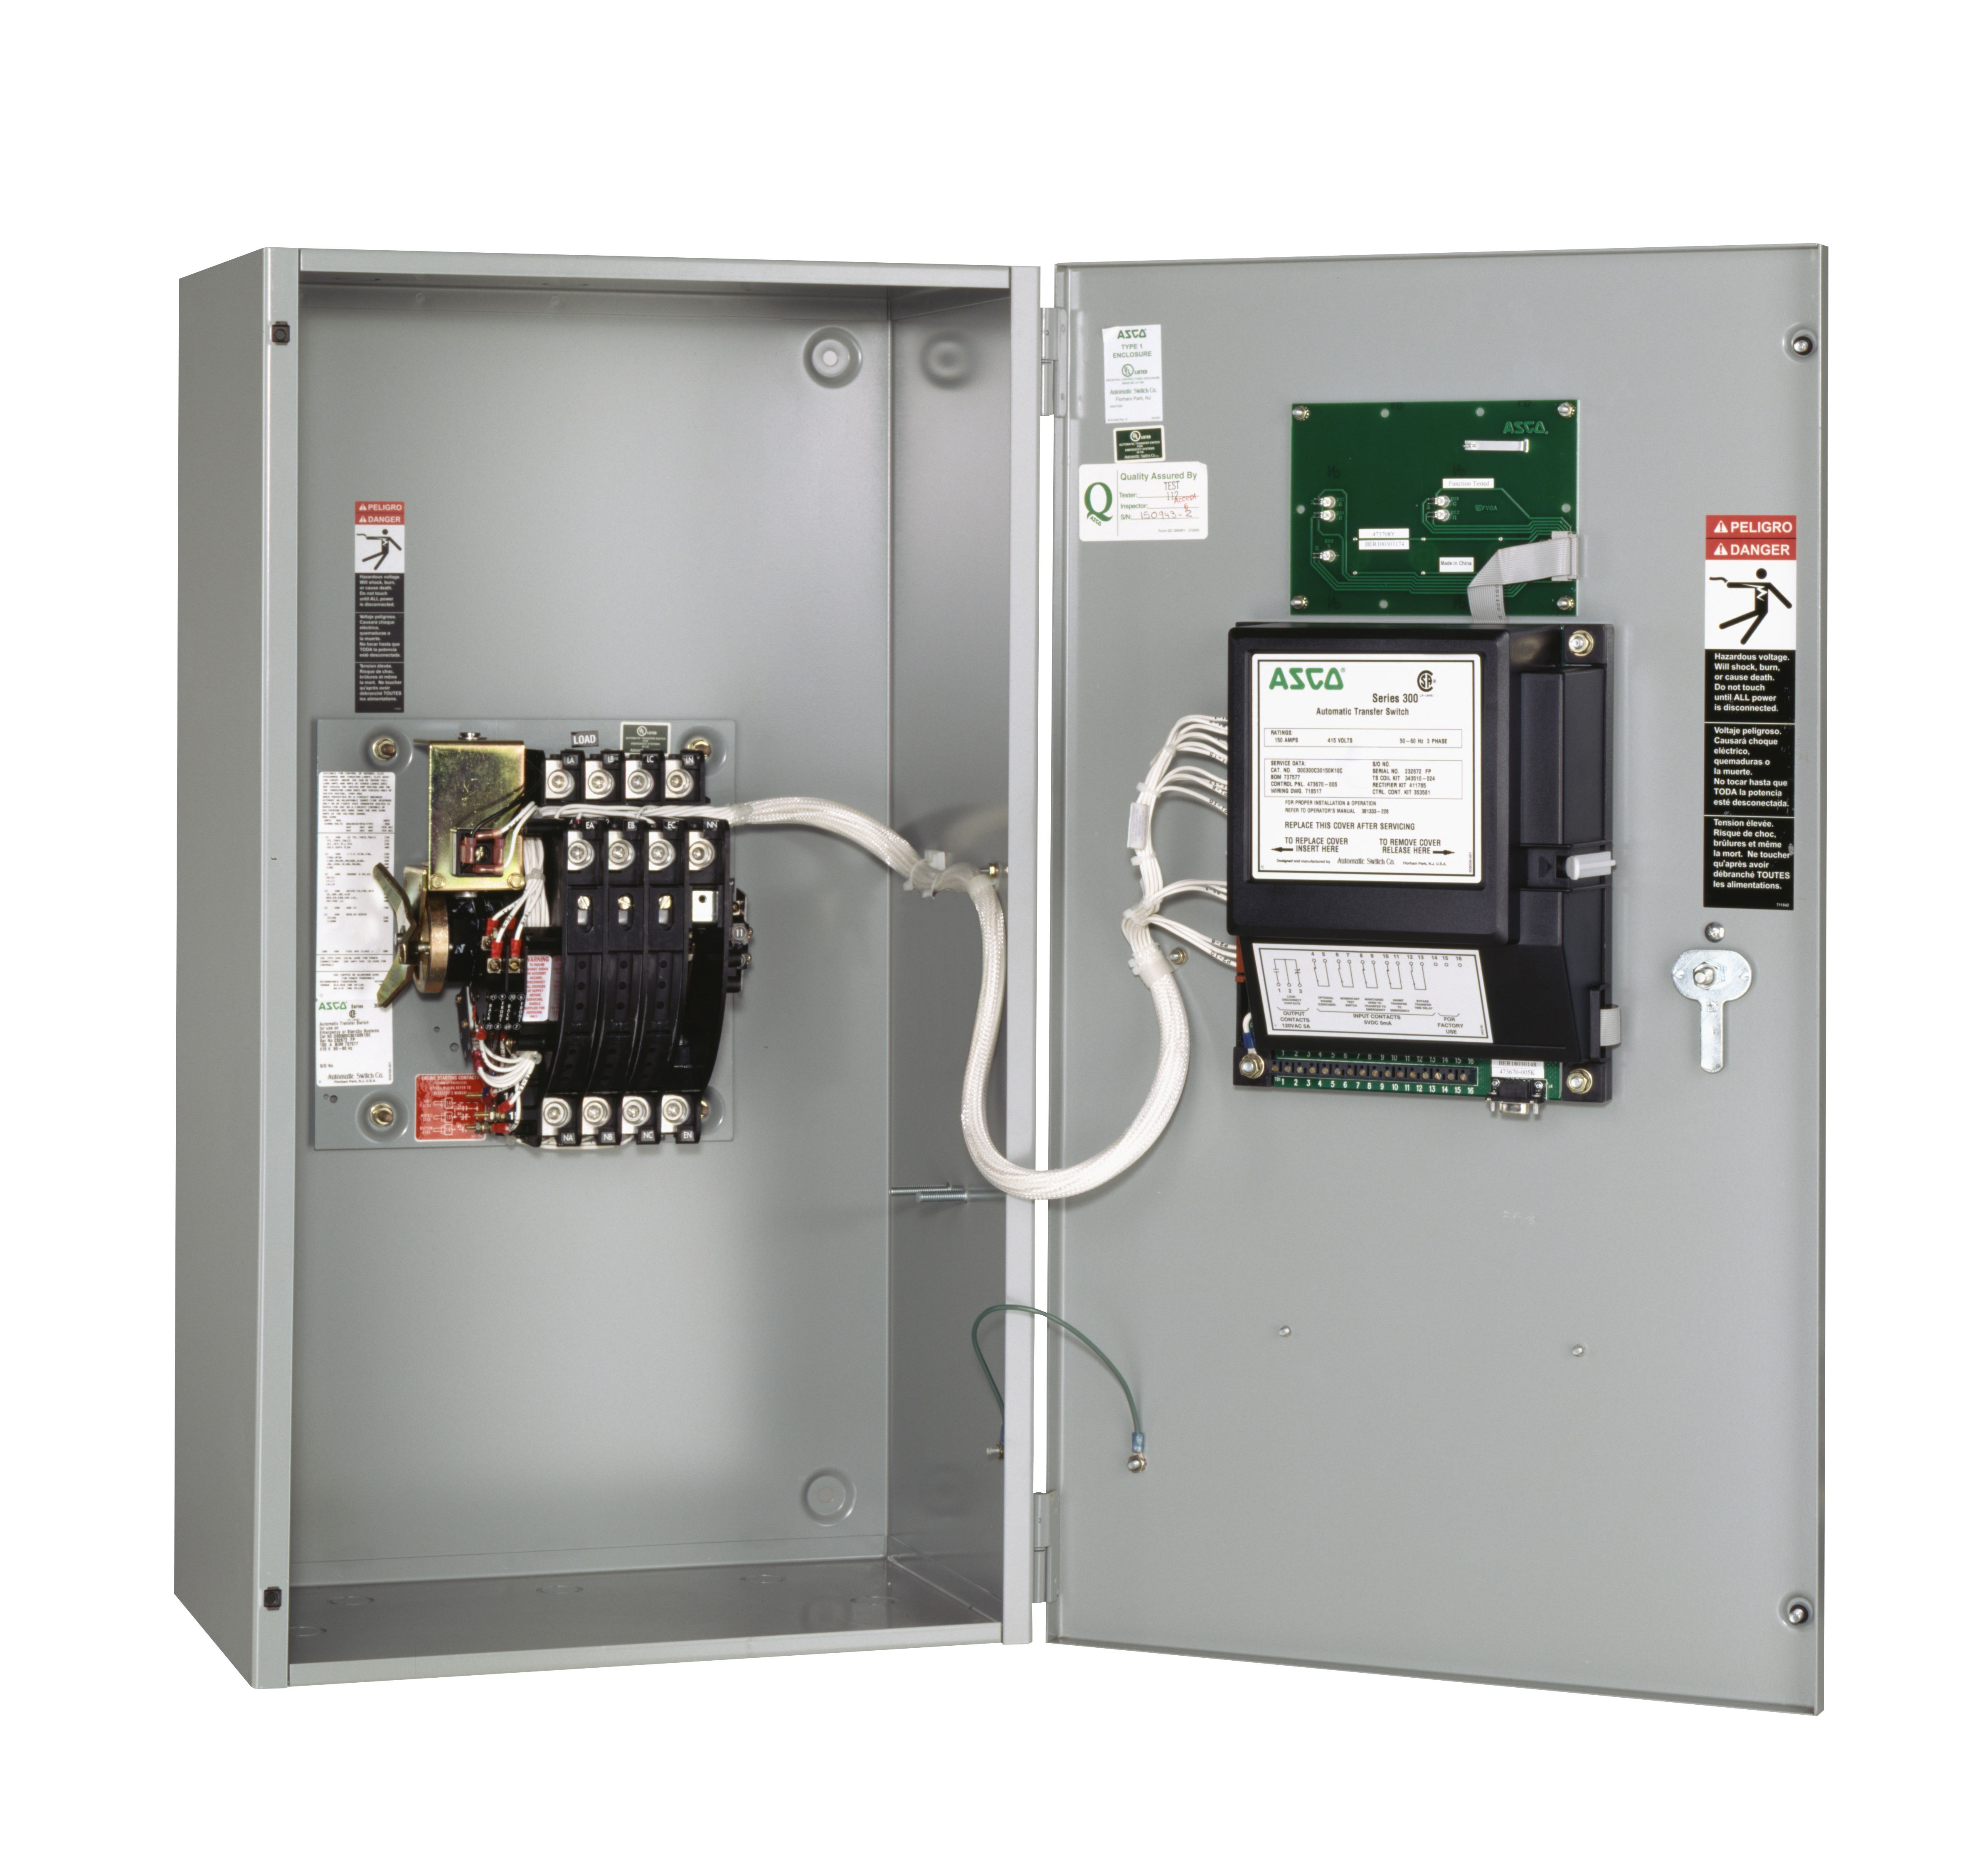 400 amp asco automatic transfer switch - 480 volt